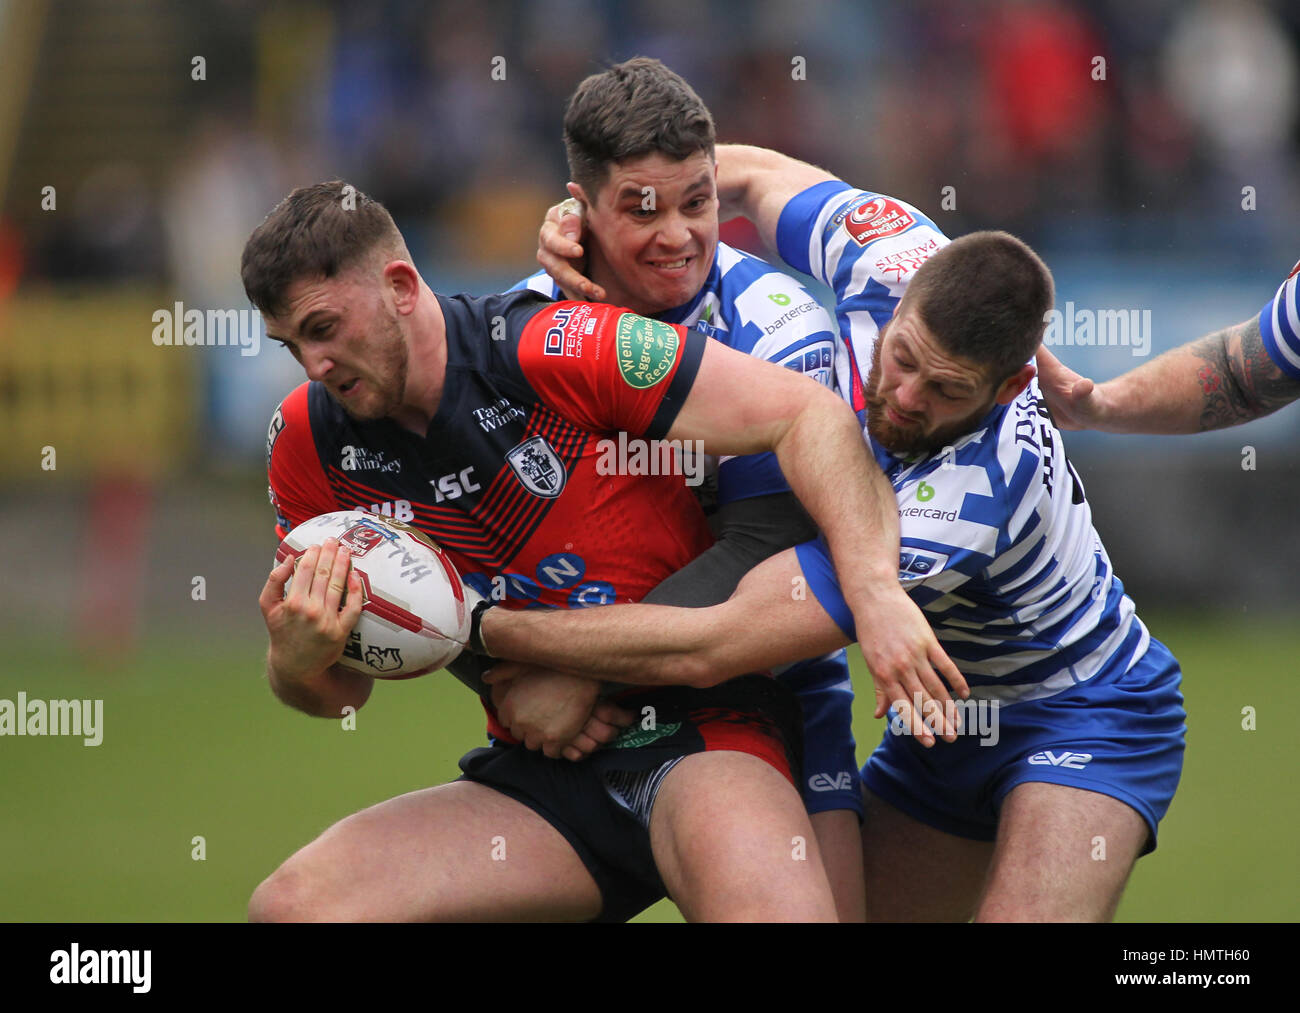 Die Shay Stadium, UK. 5. Februar 2017. Shay Stadion, Halifax, West Yorkshire 5. Februar 2017. Halifax V Featherstone Stockfoto